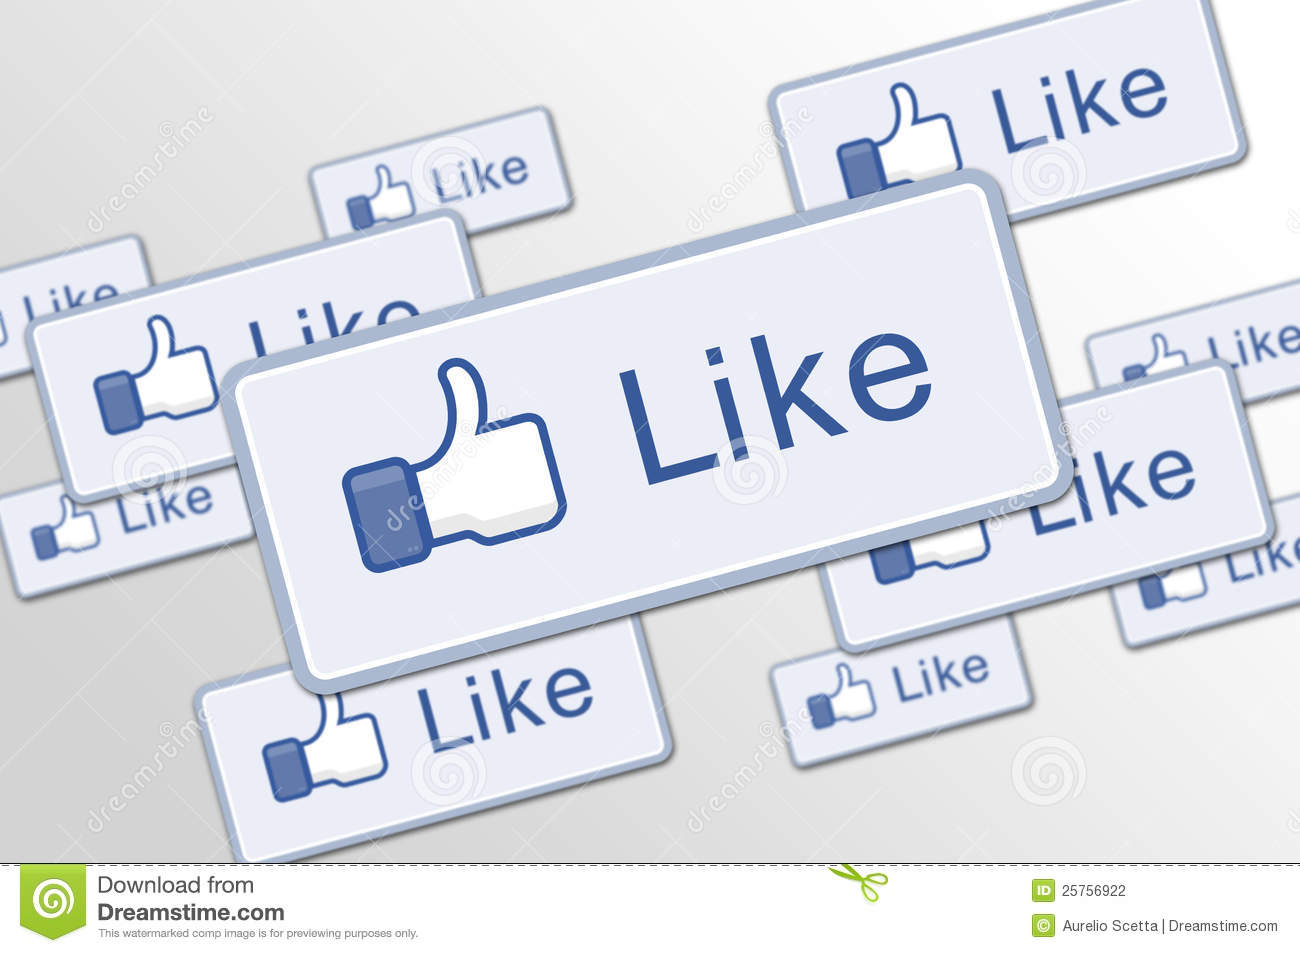 how to add facebook like button to image